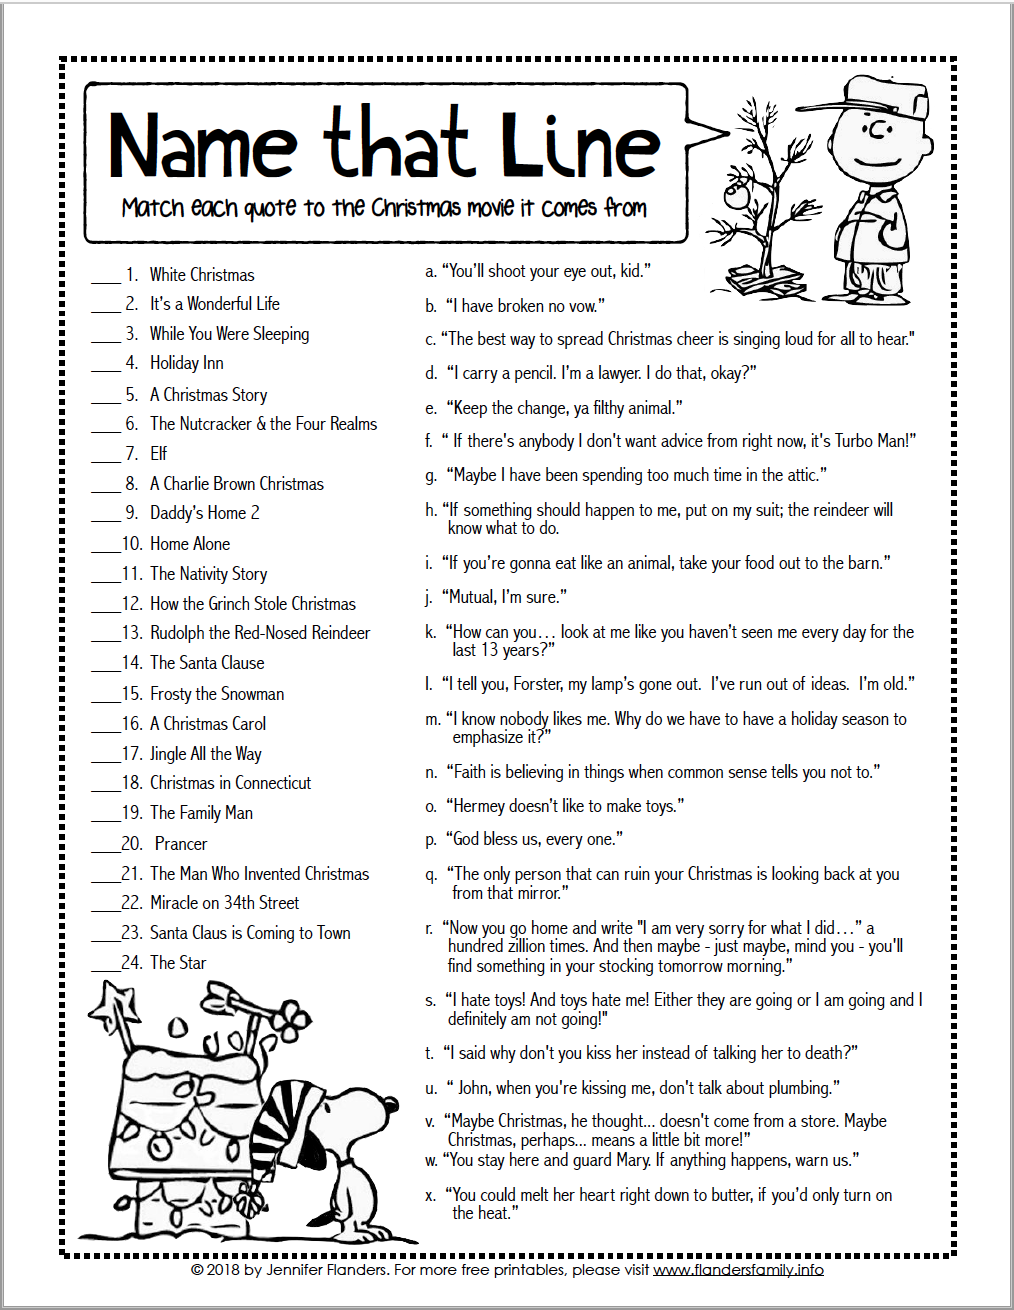 graphic about Christmas Carol Trivia Printable identify Status that Line\